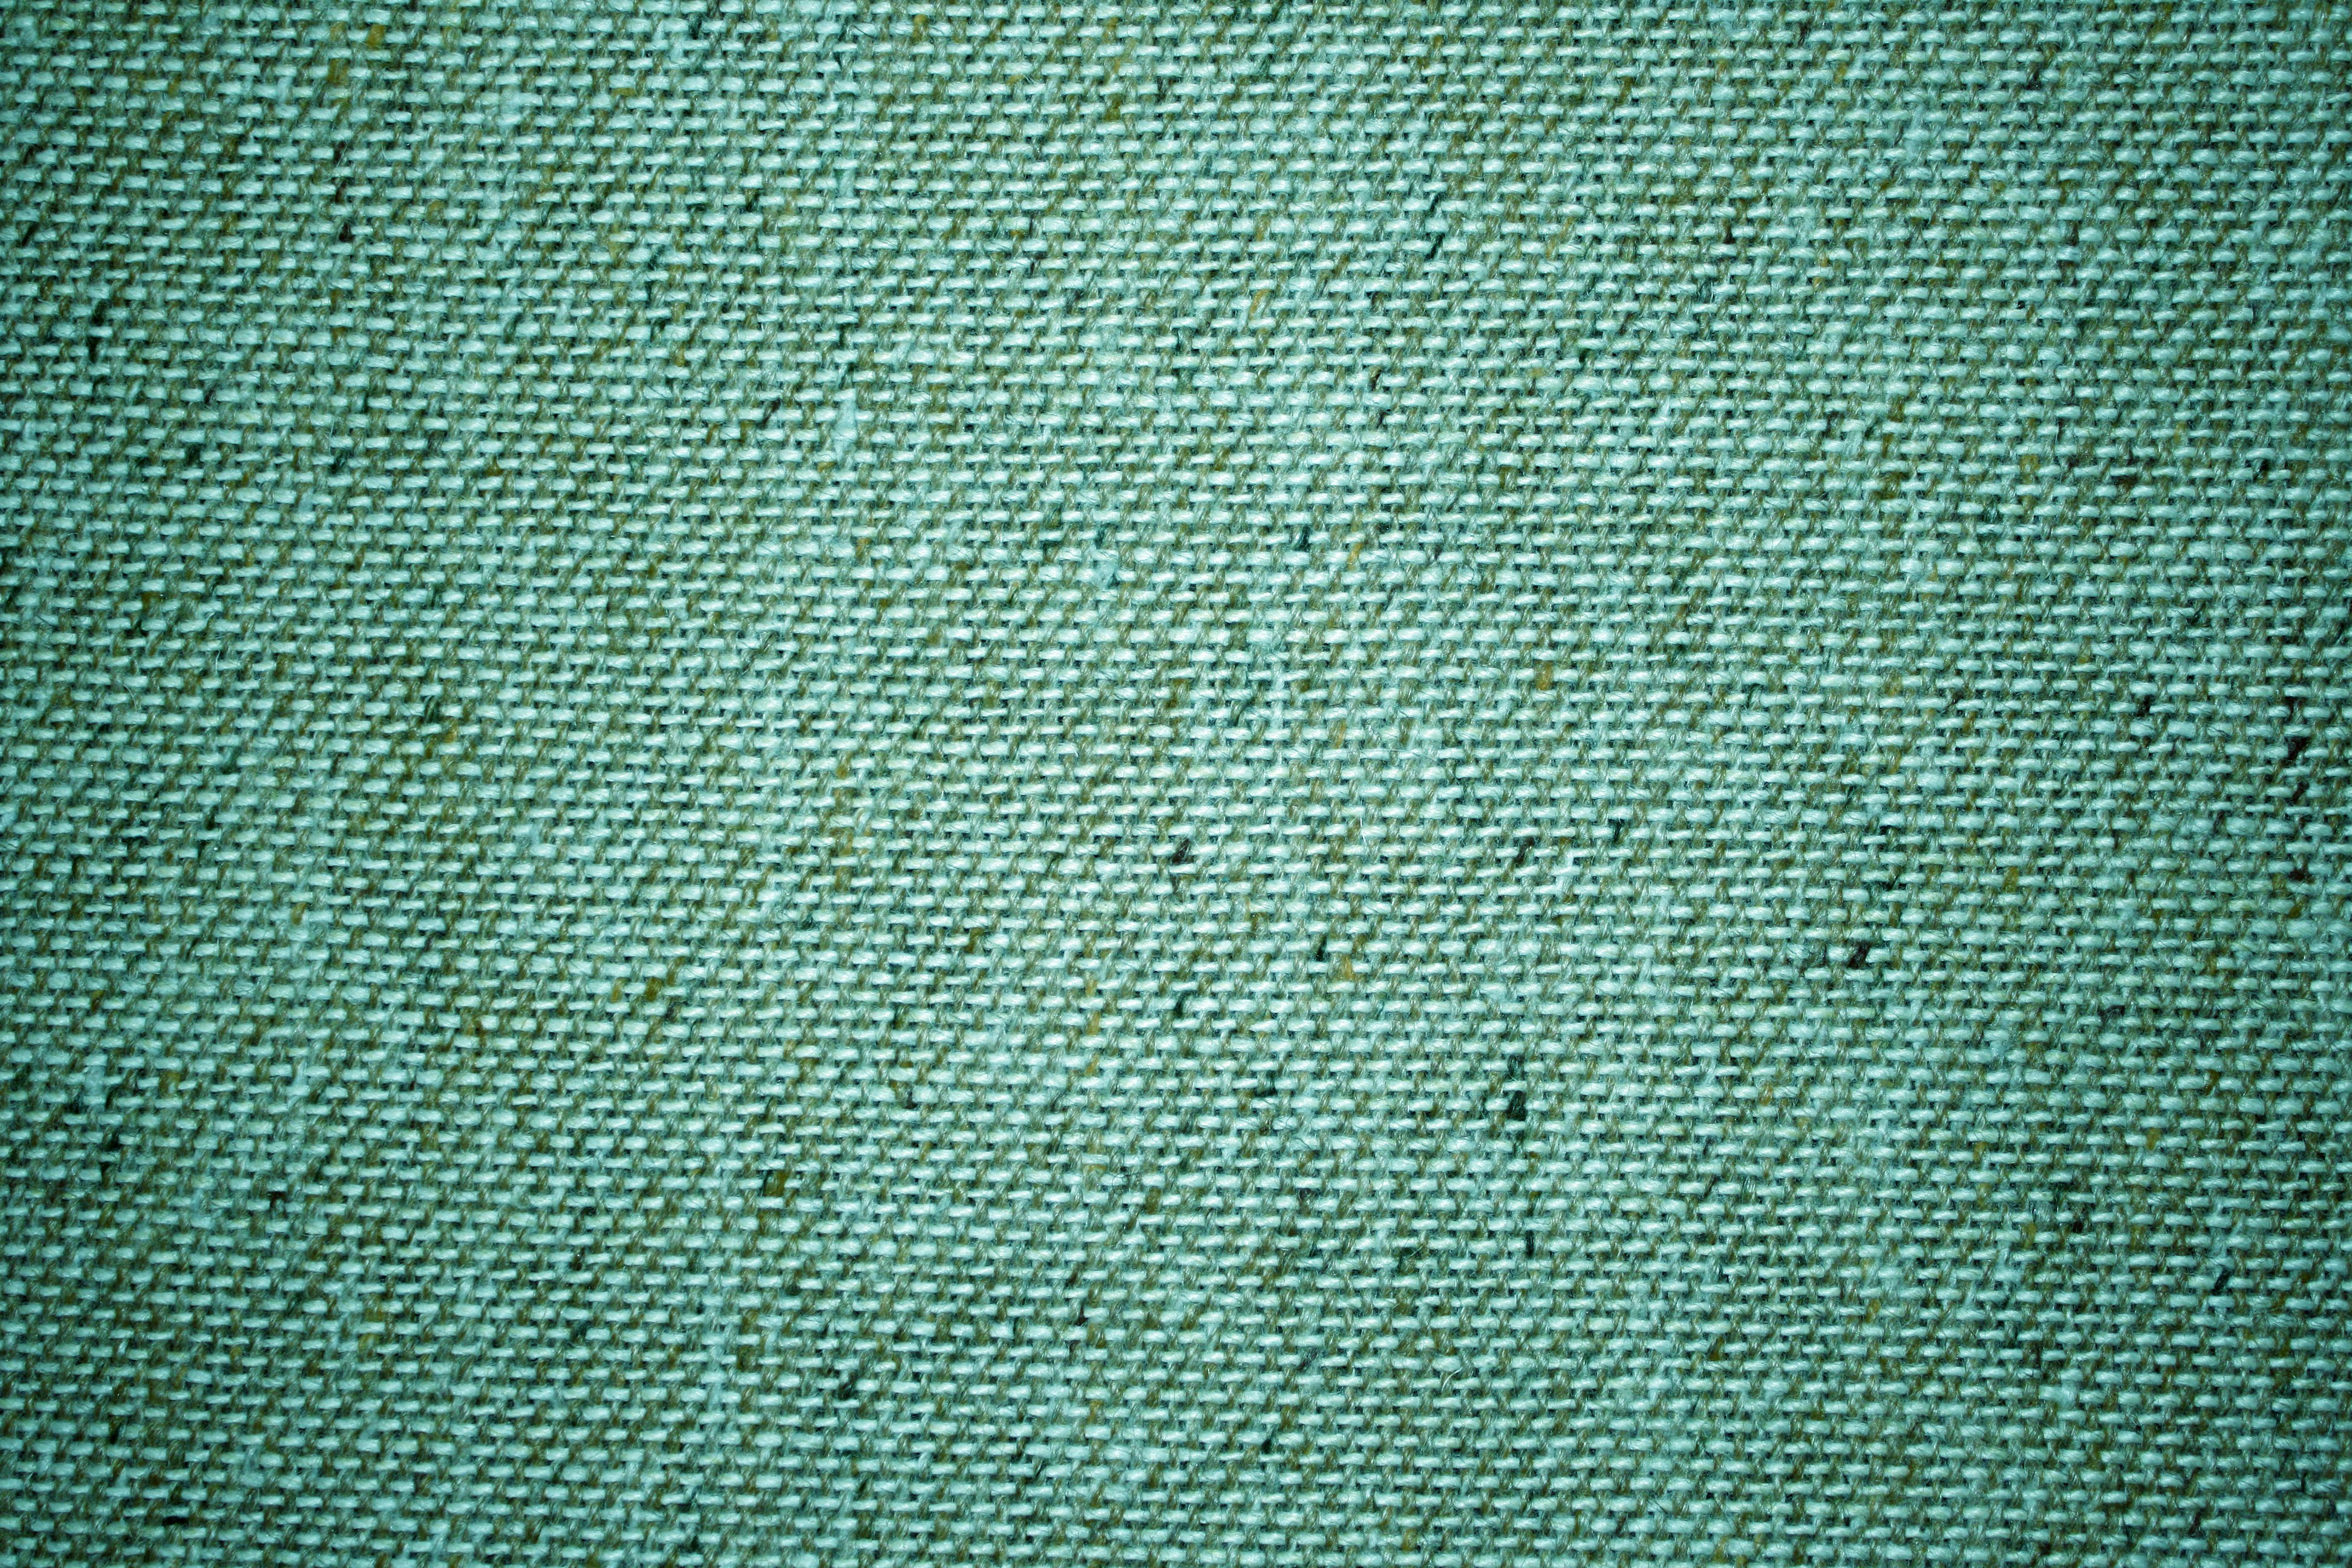 Teal Green Upholstery Fabric Close Up Texture   High Resolution 3888x2592